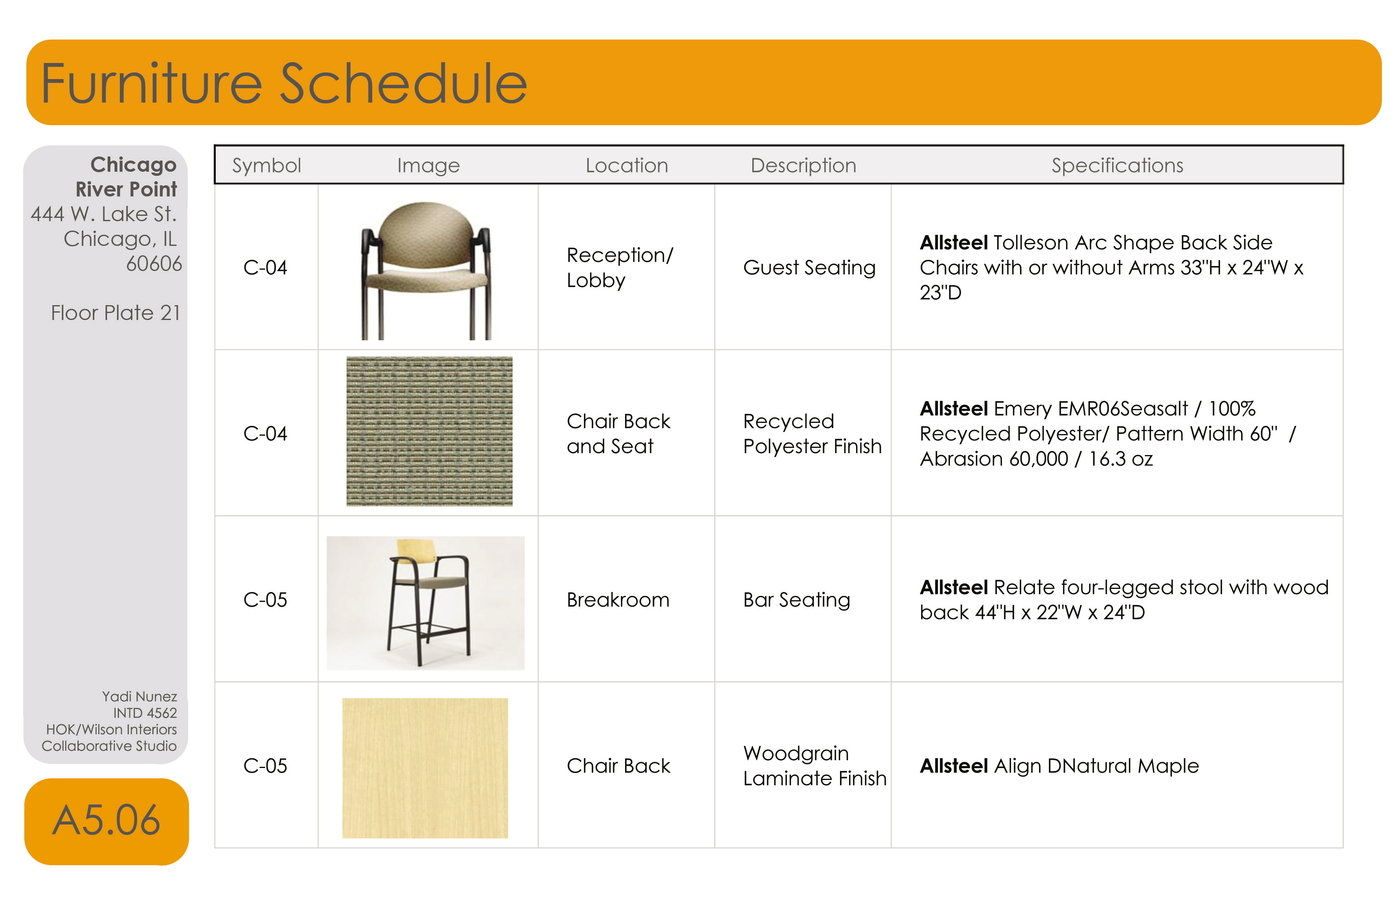 Hok collaborative senior project by yadi nunez at for Interior design schedule template